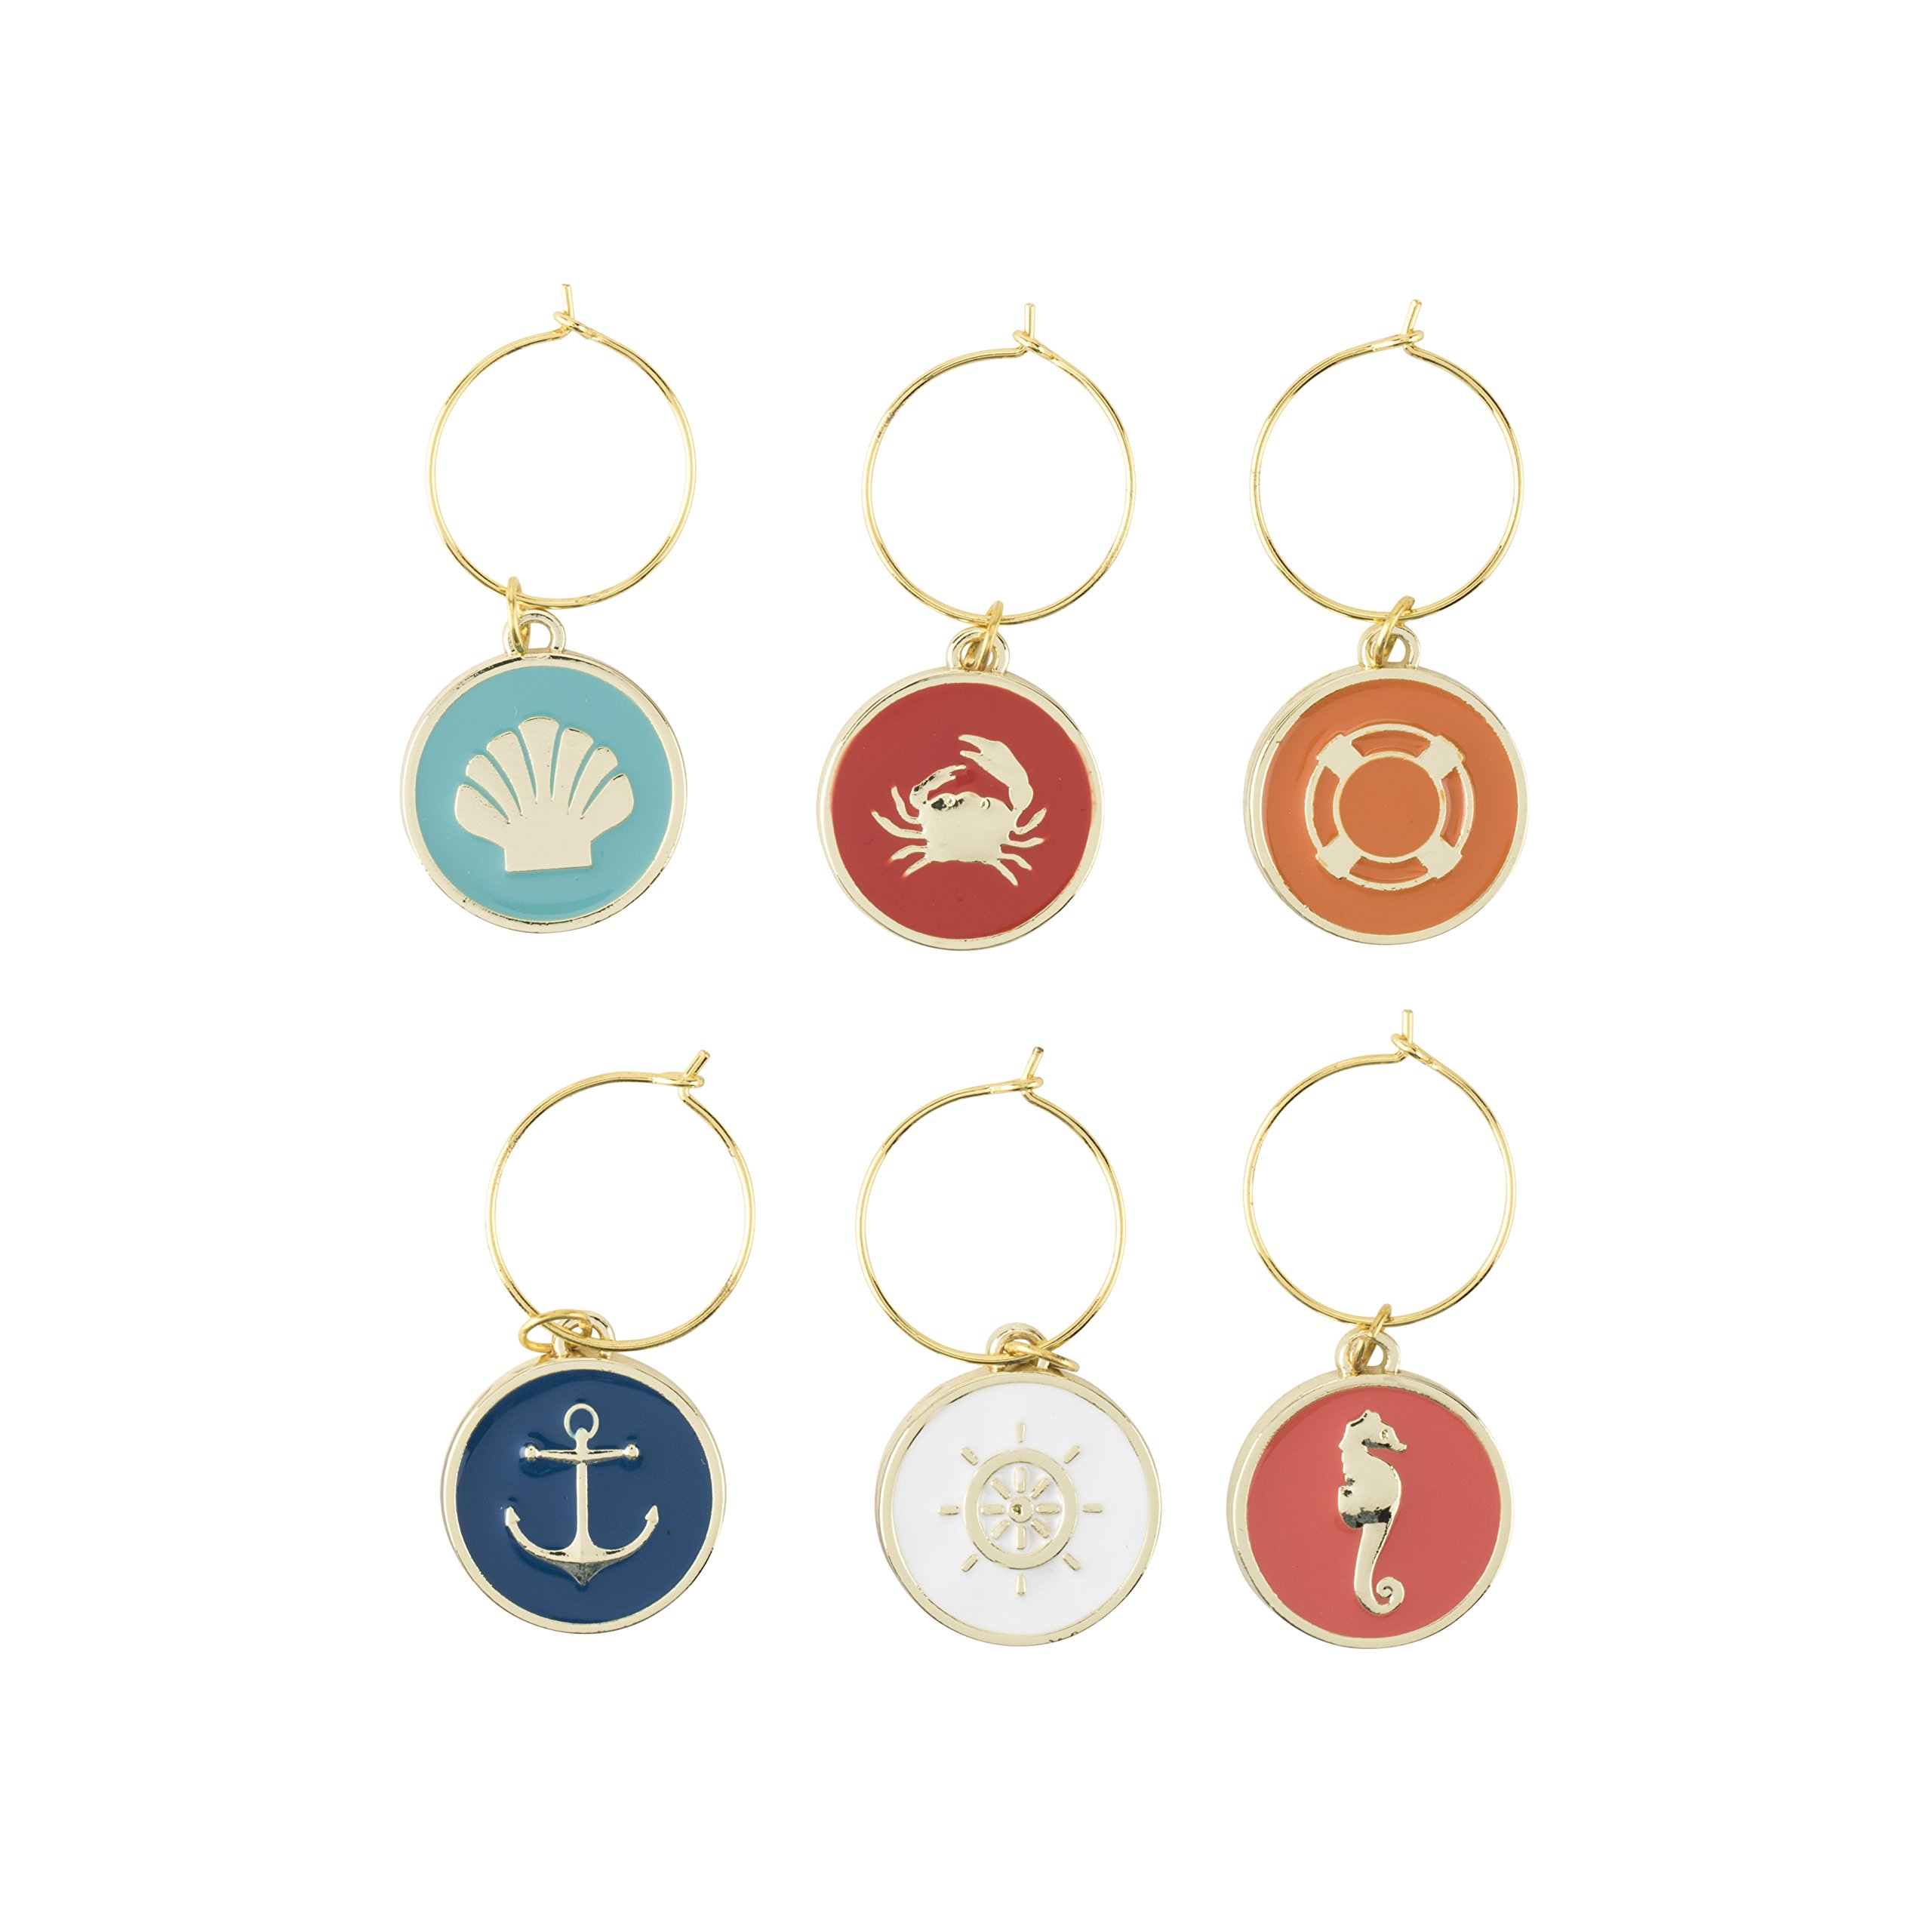 Blush 2085 Seashore Wine Charms, Multi Color by TRUE